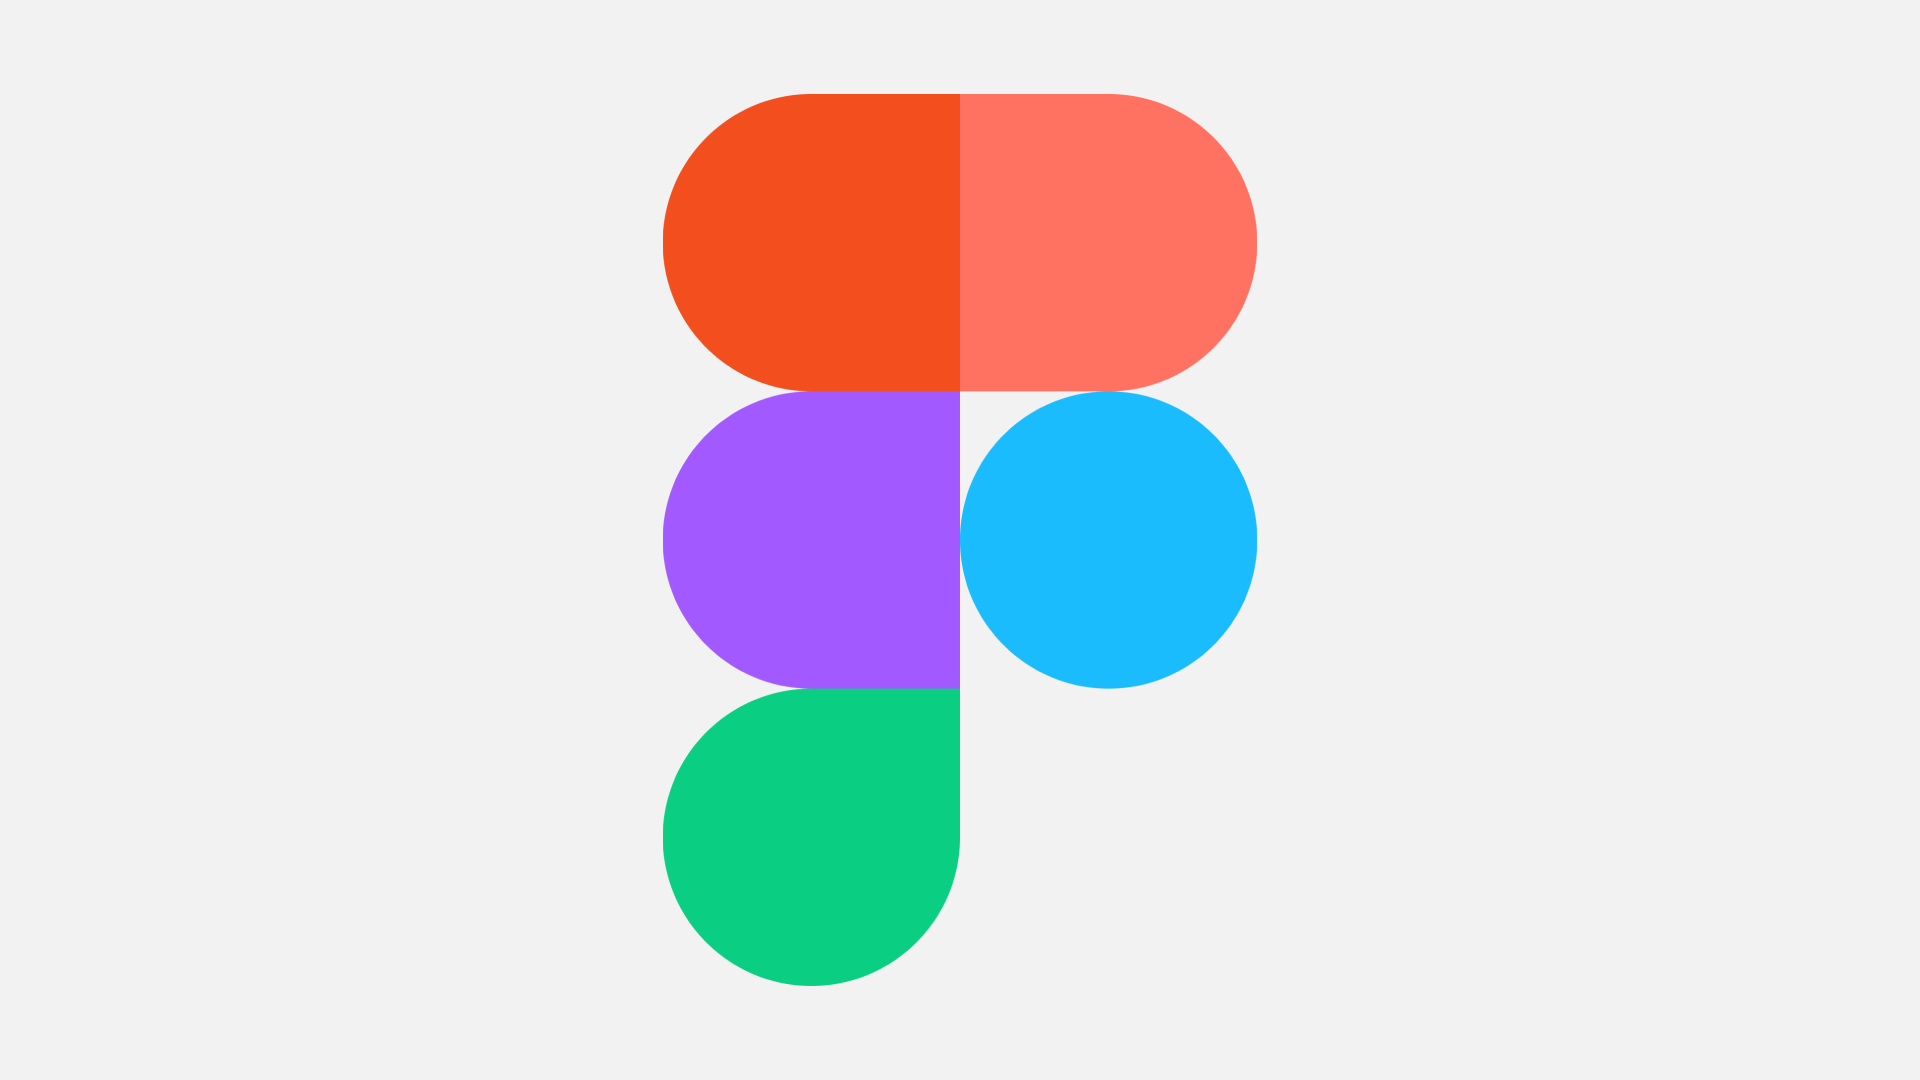 The Figma logo, five circles arranged to resemble the letter F, sitting against a grey background.